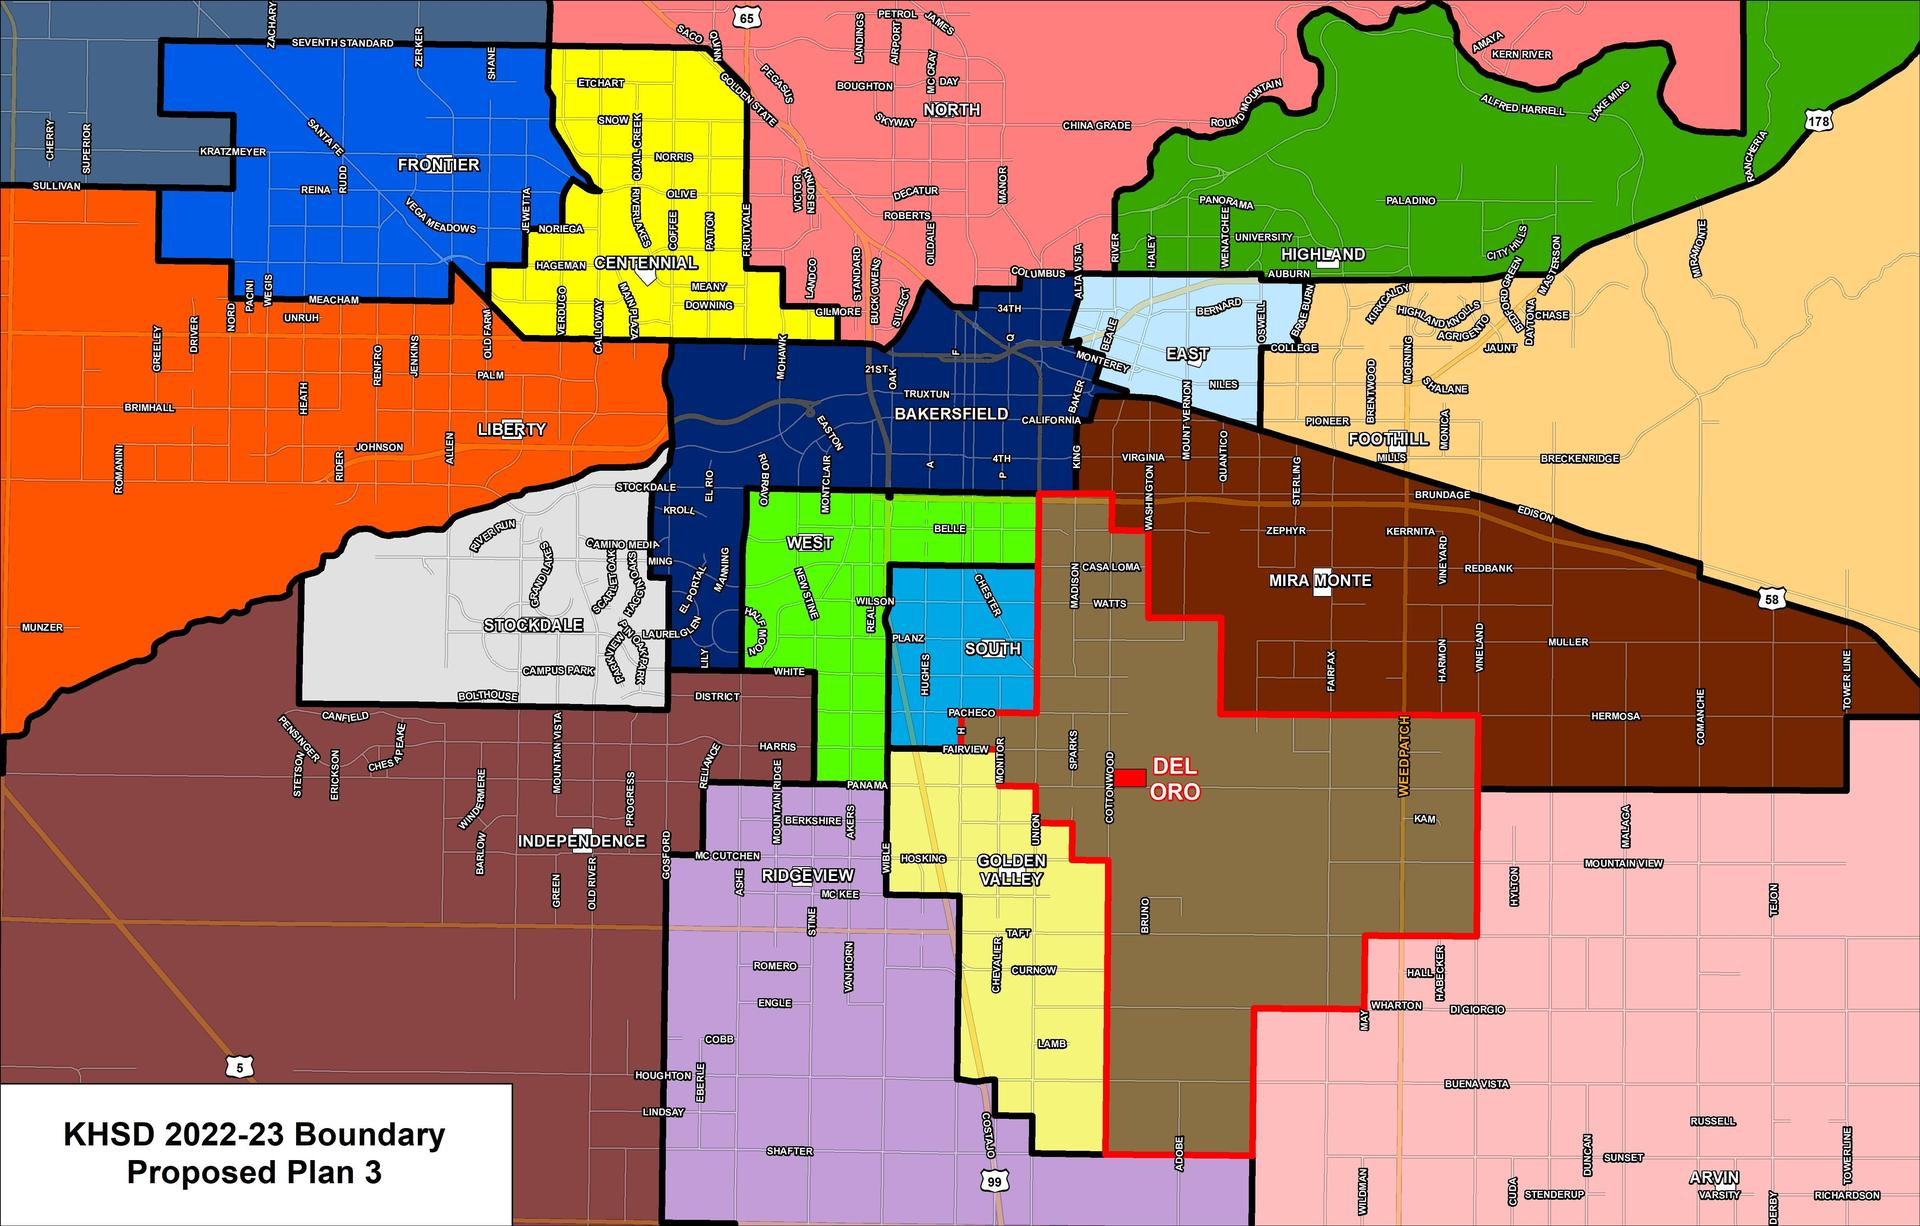 2022-23 Approved Boundary